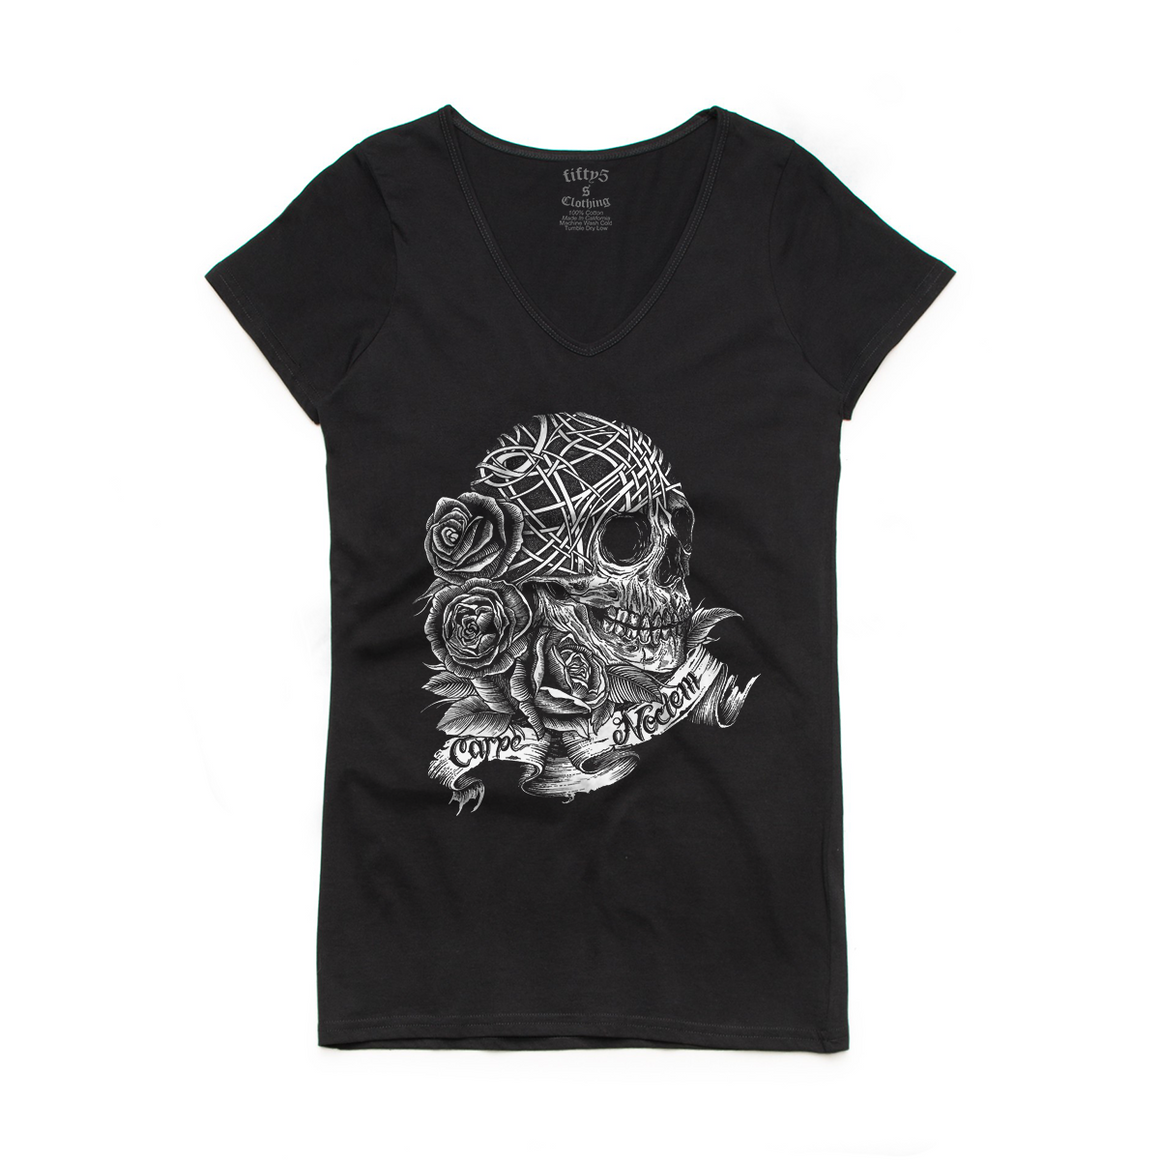 Carpe Noctem Seize The Night Women's Bevel V Neck T-Shirt